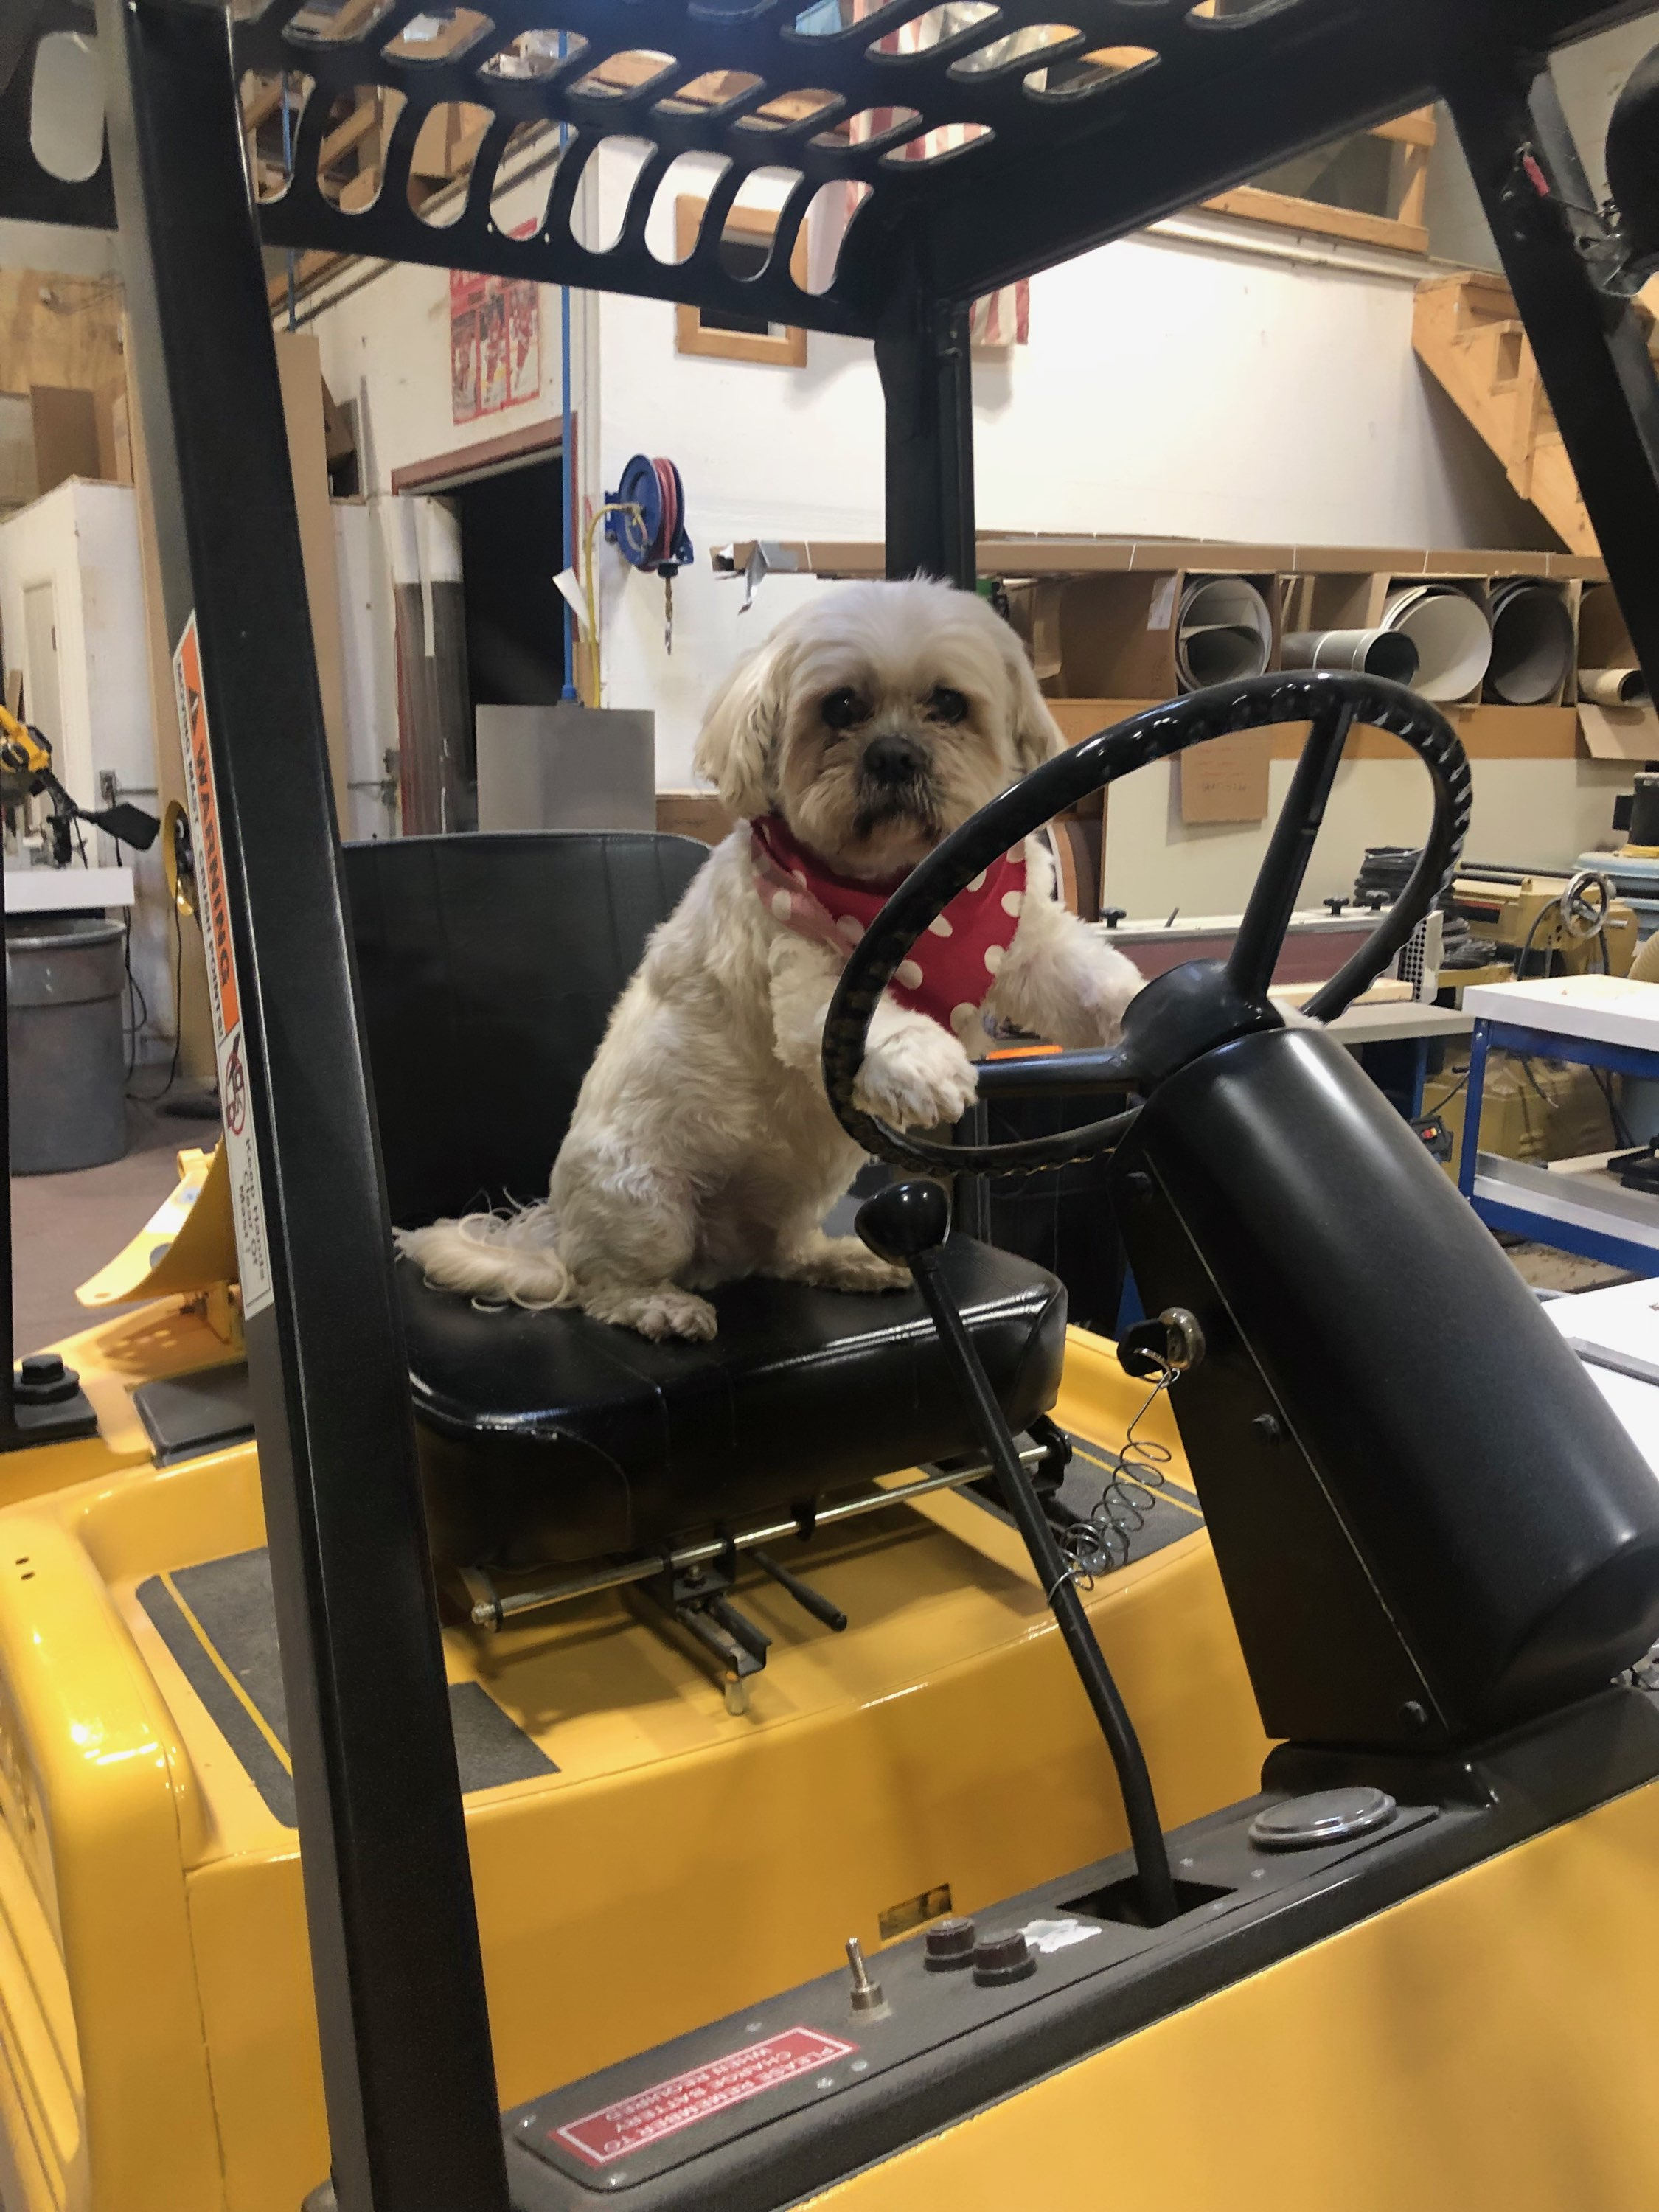 - Francis, our shop-dog, says it's time for a new forklift! We tend to listen to Francis as he is the shop foreman. The team agreed and off we went, forklift shopping!